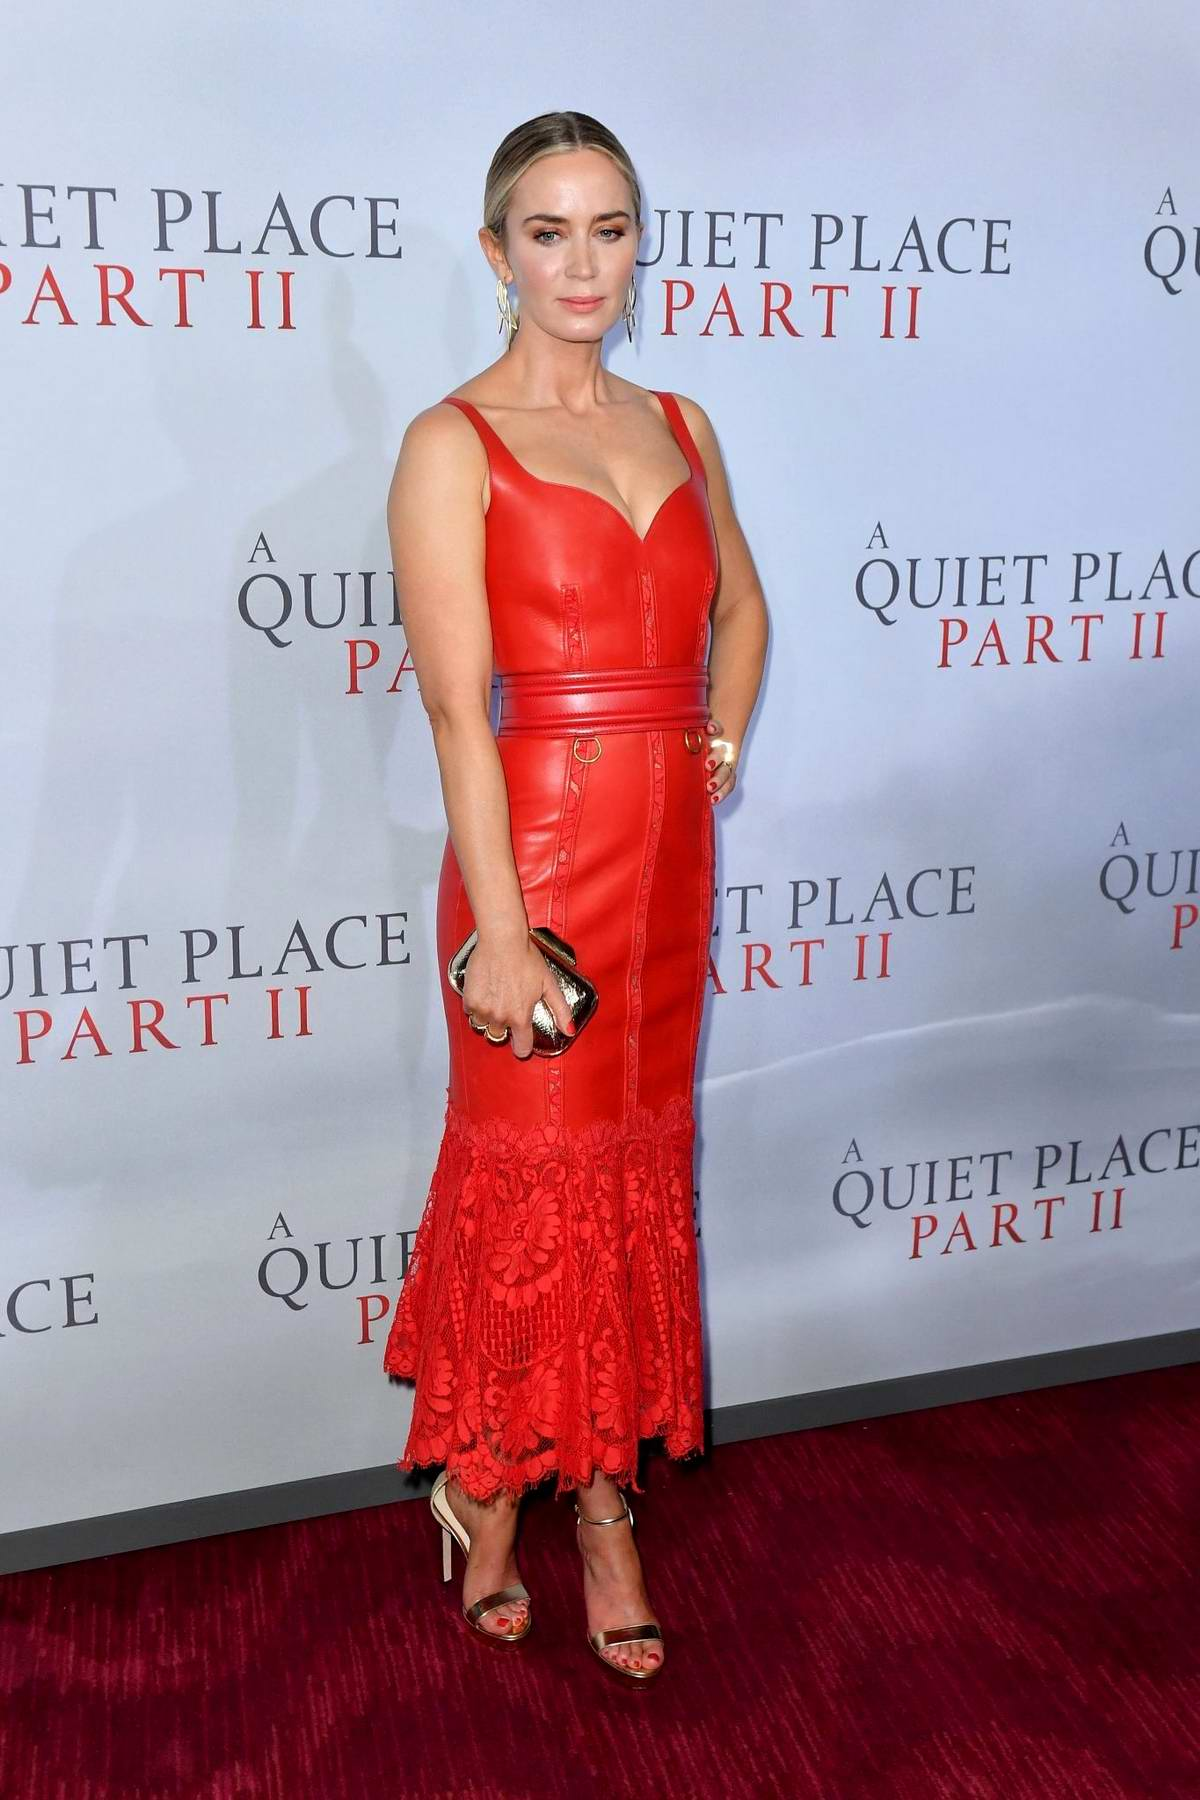 Emily Blunt attends the Premiere of 'A Quiet Place Part II' in New York City